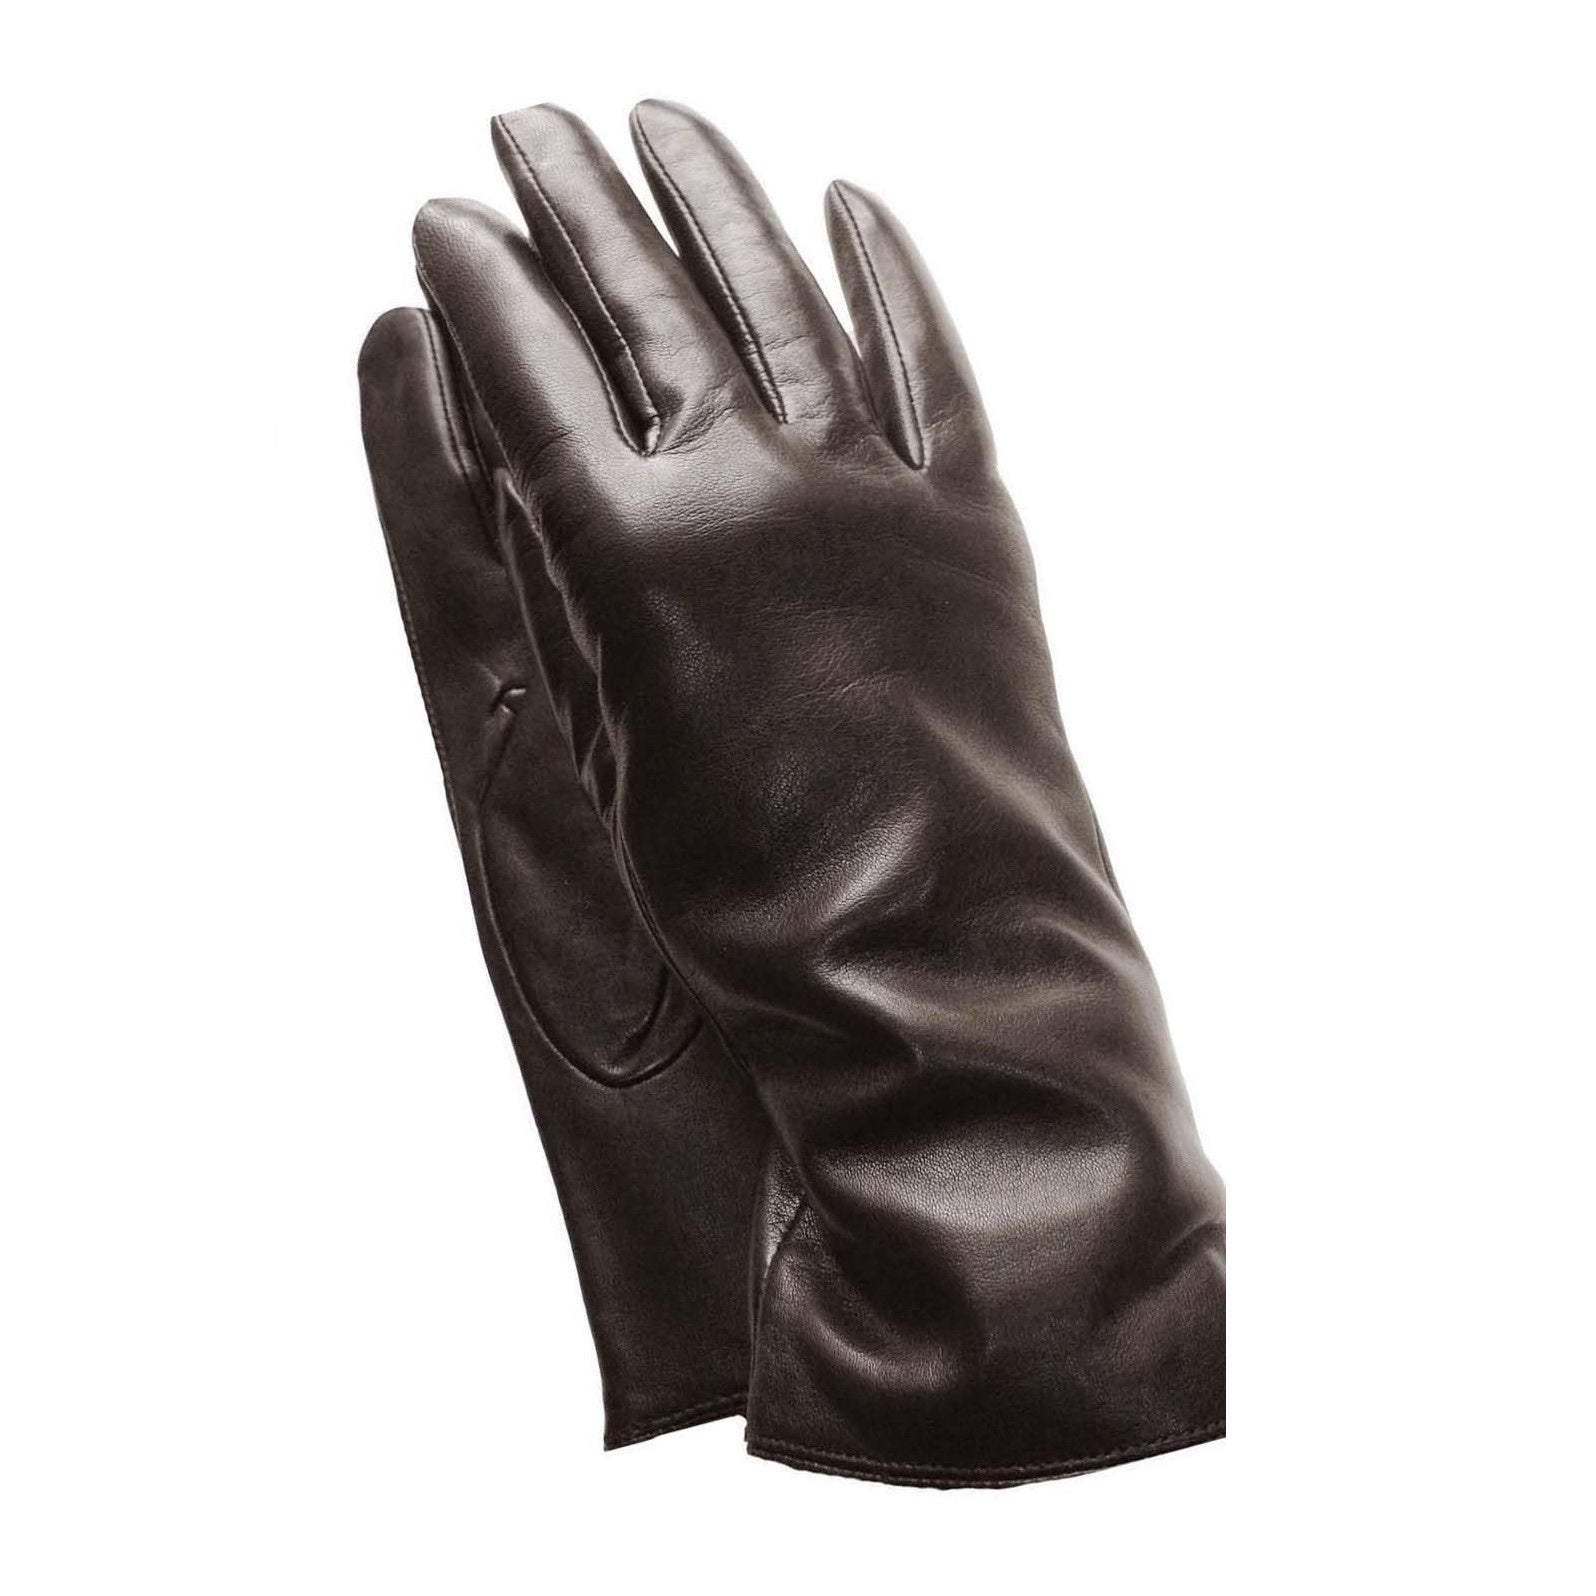 35f2a91bf Shop Women's Premium Leather Gloves - Free Shipping On Orders Over $45 -  Overstock - 6982350